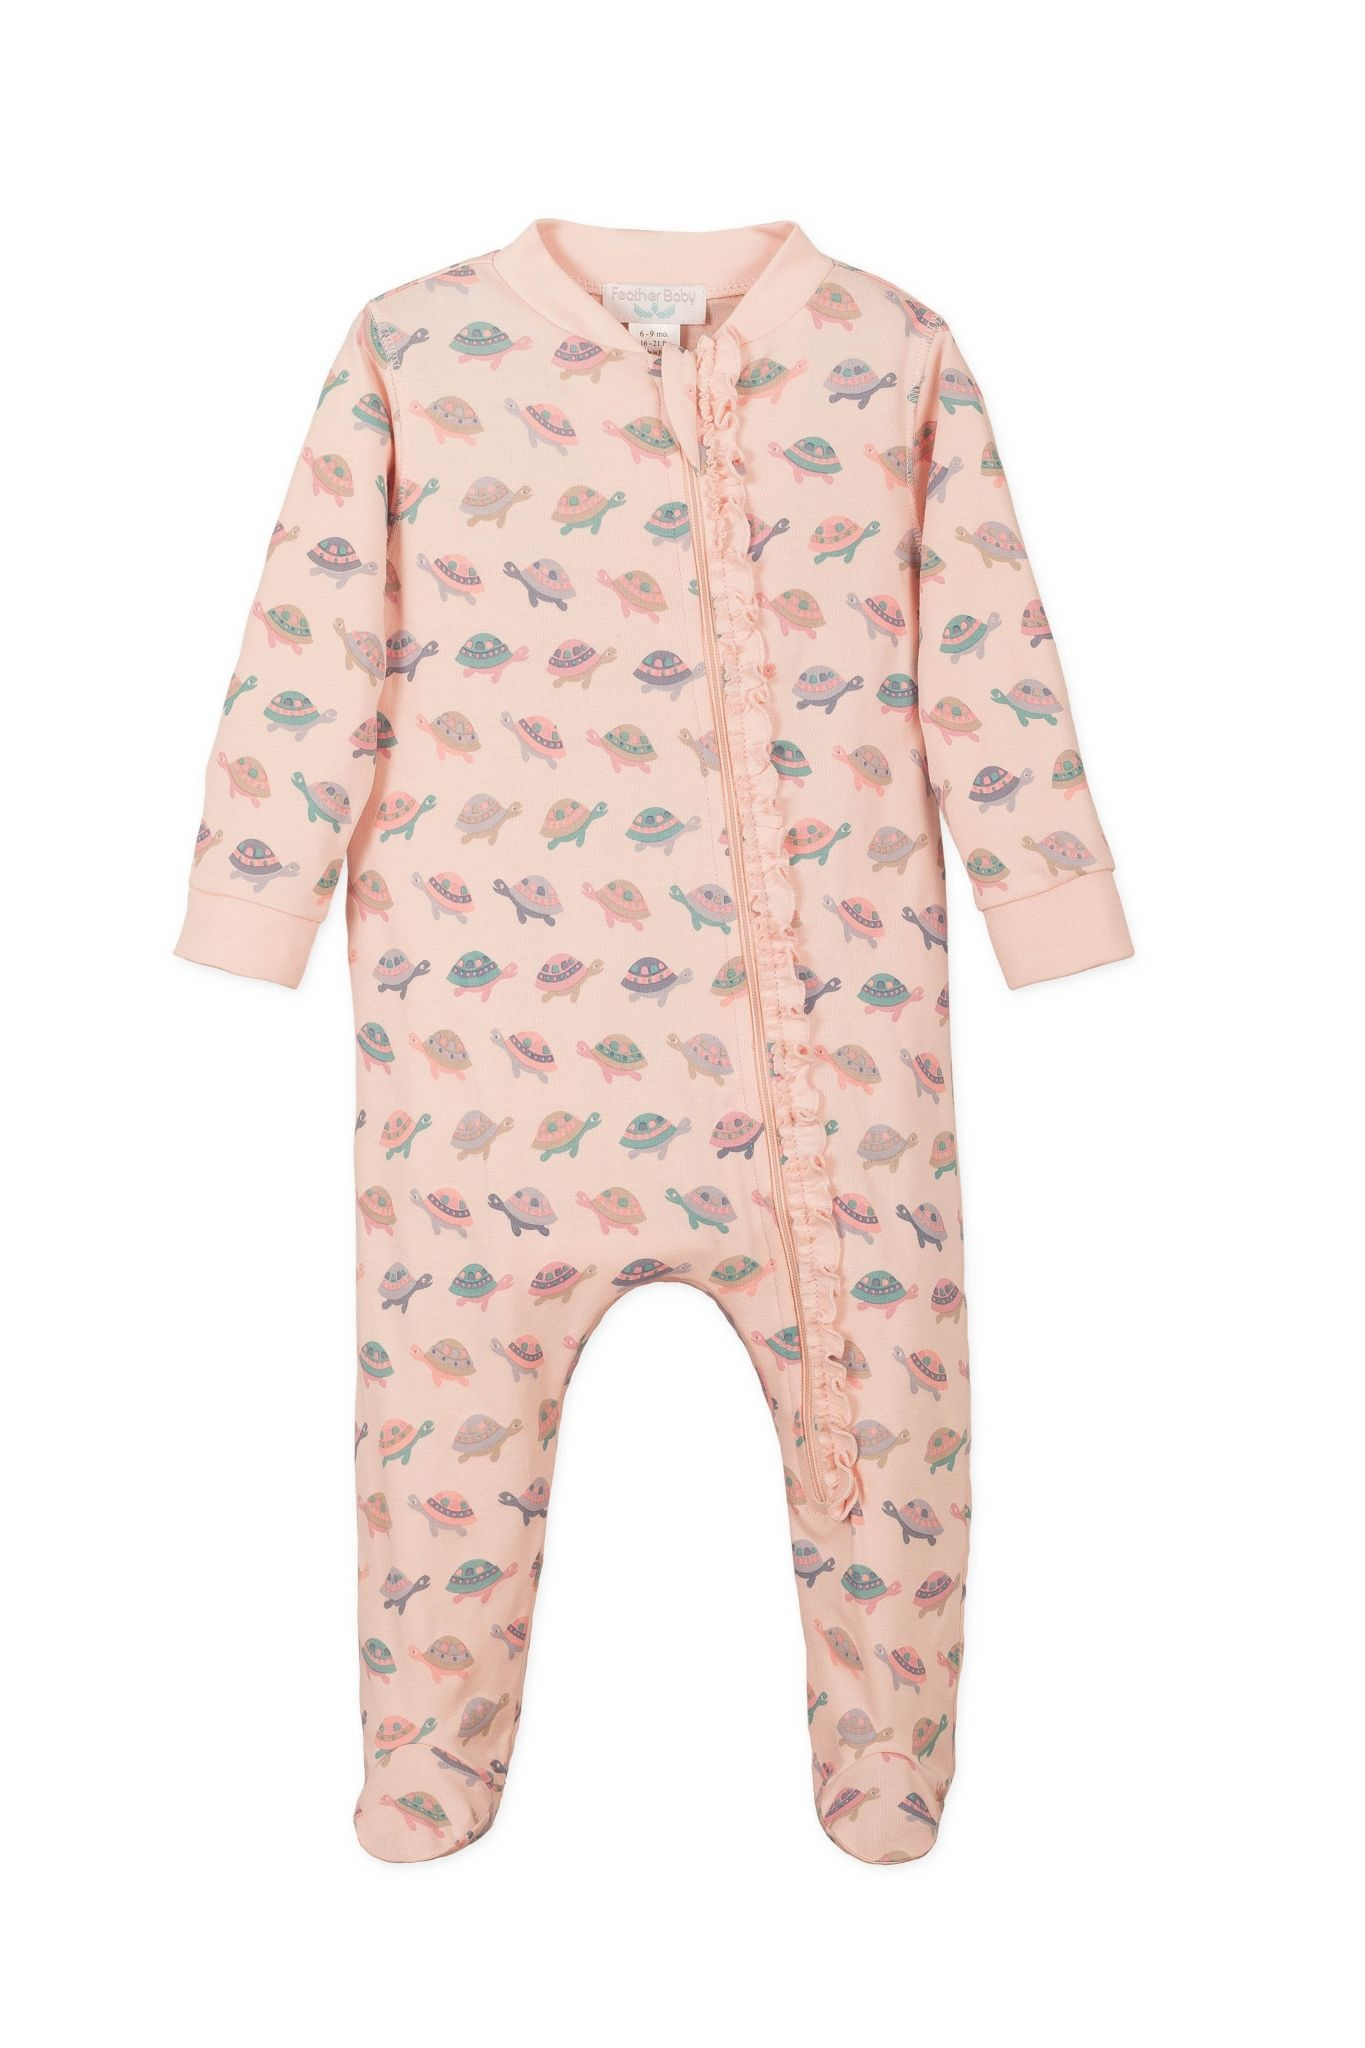 FEATHER BABY Zipper Footie